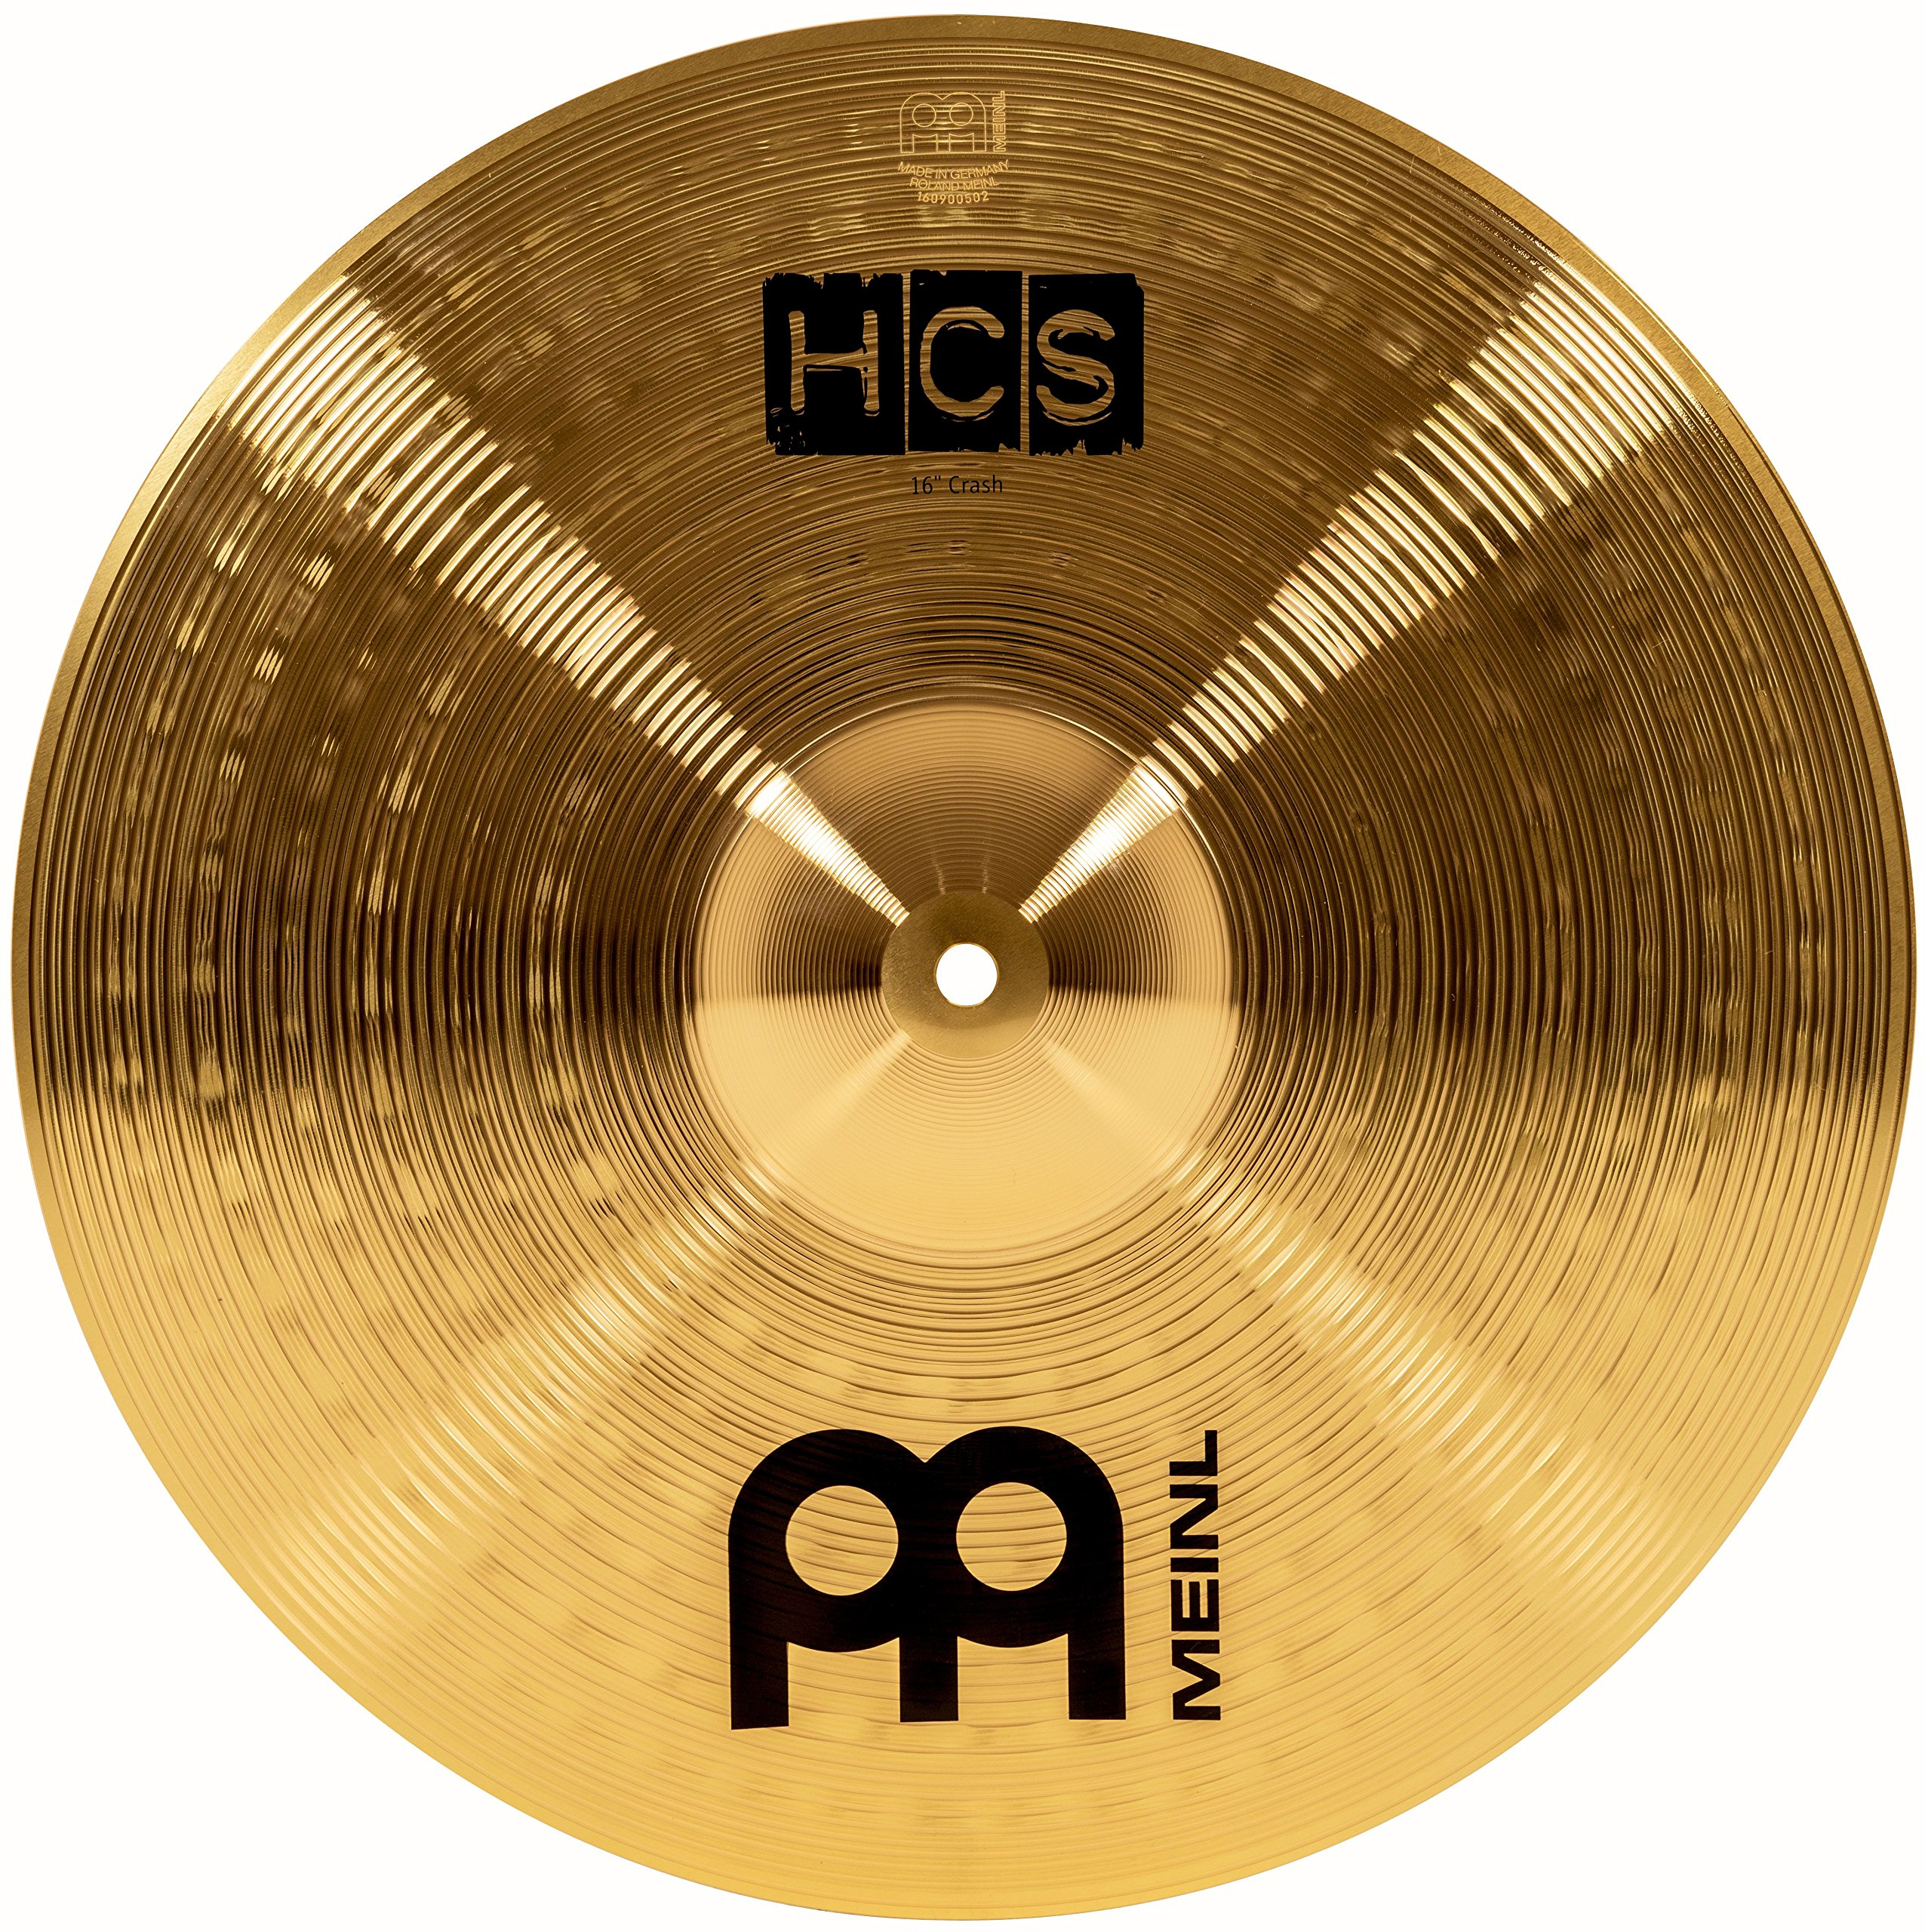 Meinl 16'' Crash Cymbal - HCS Traditional Finish Brass for Drum Set, Made In Germany, 2-YEAR WARRANTY (HCS16C) by Meinl Cymbals